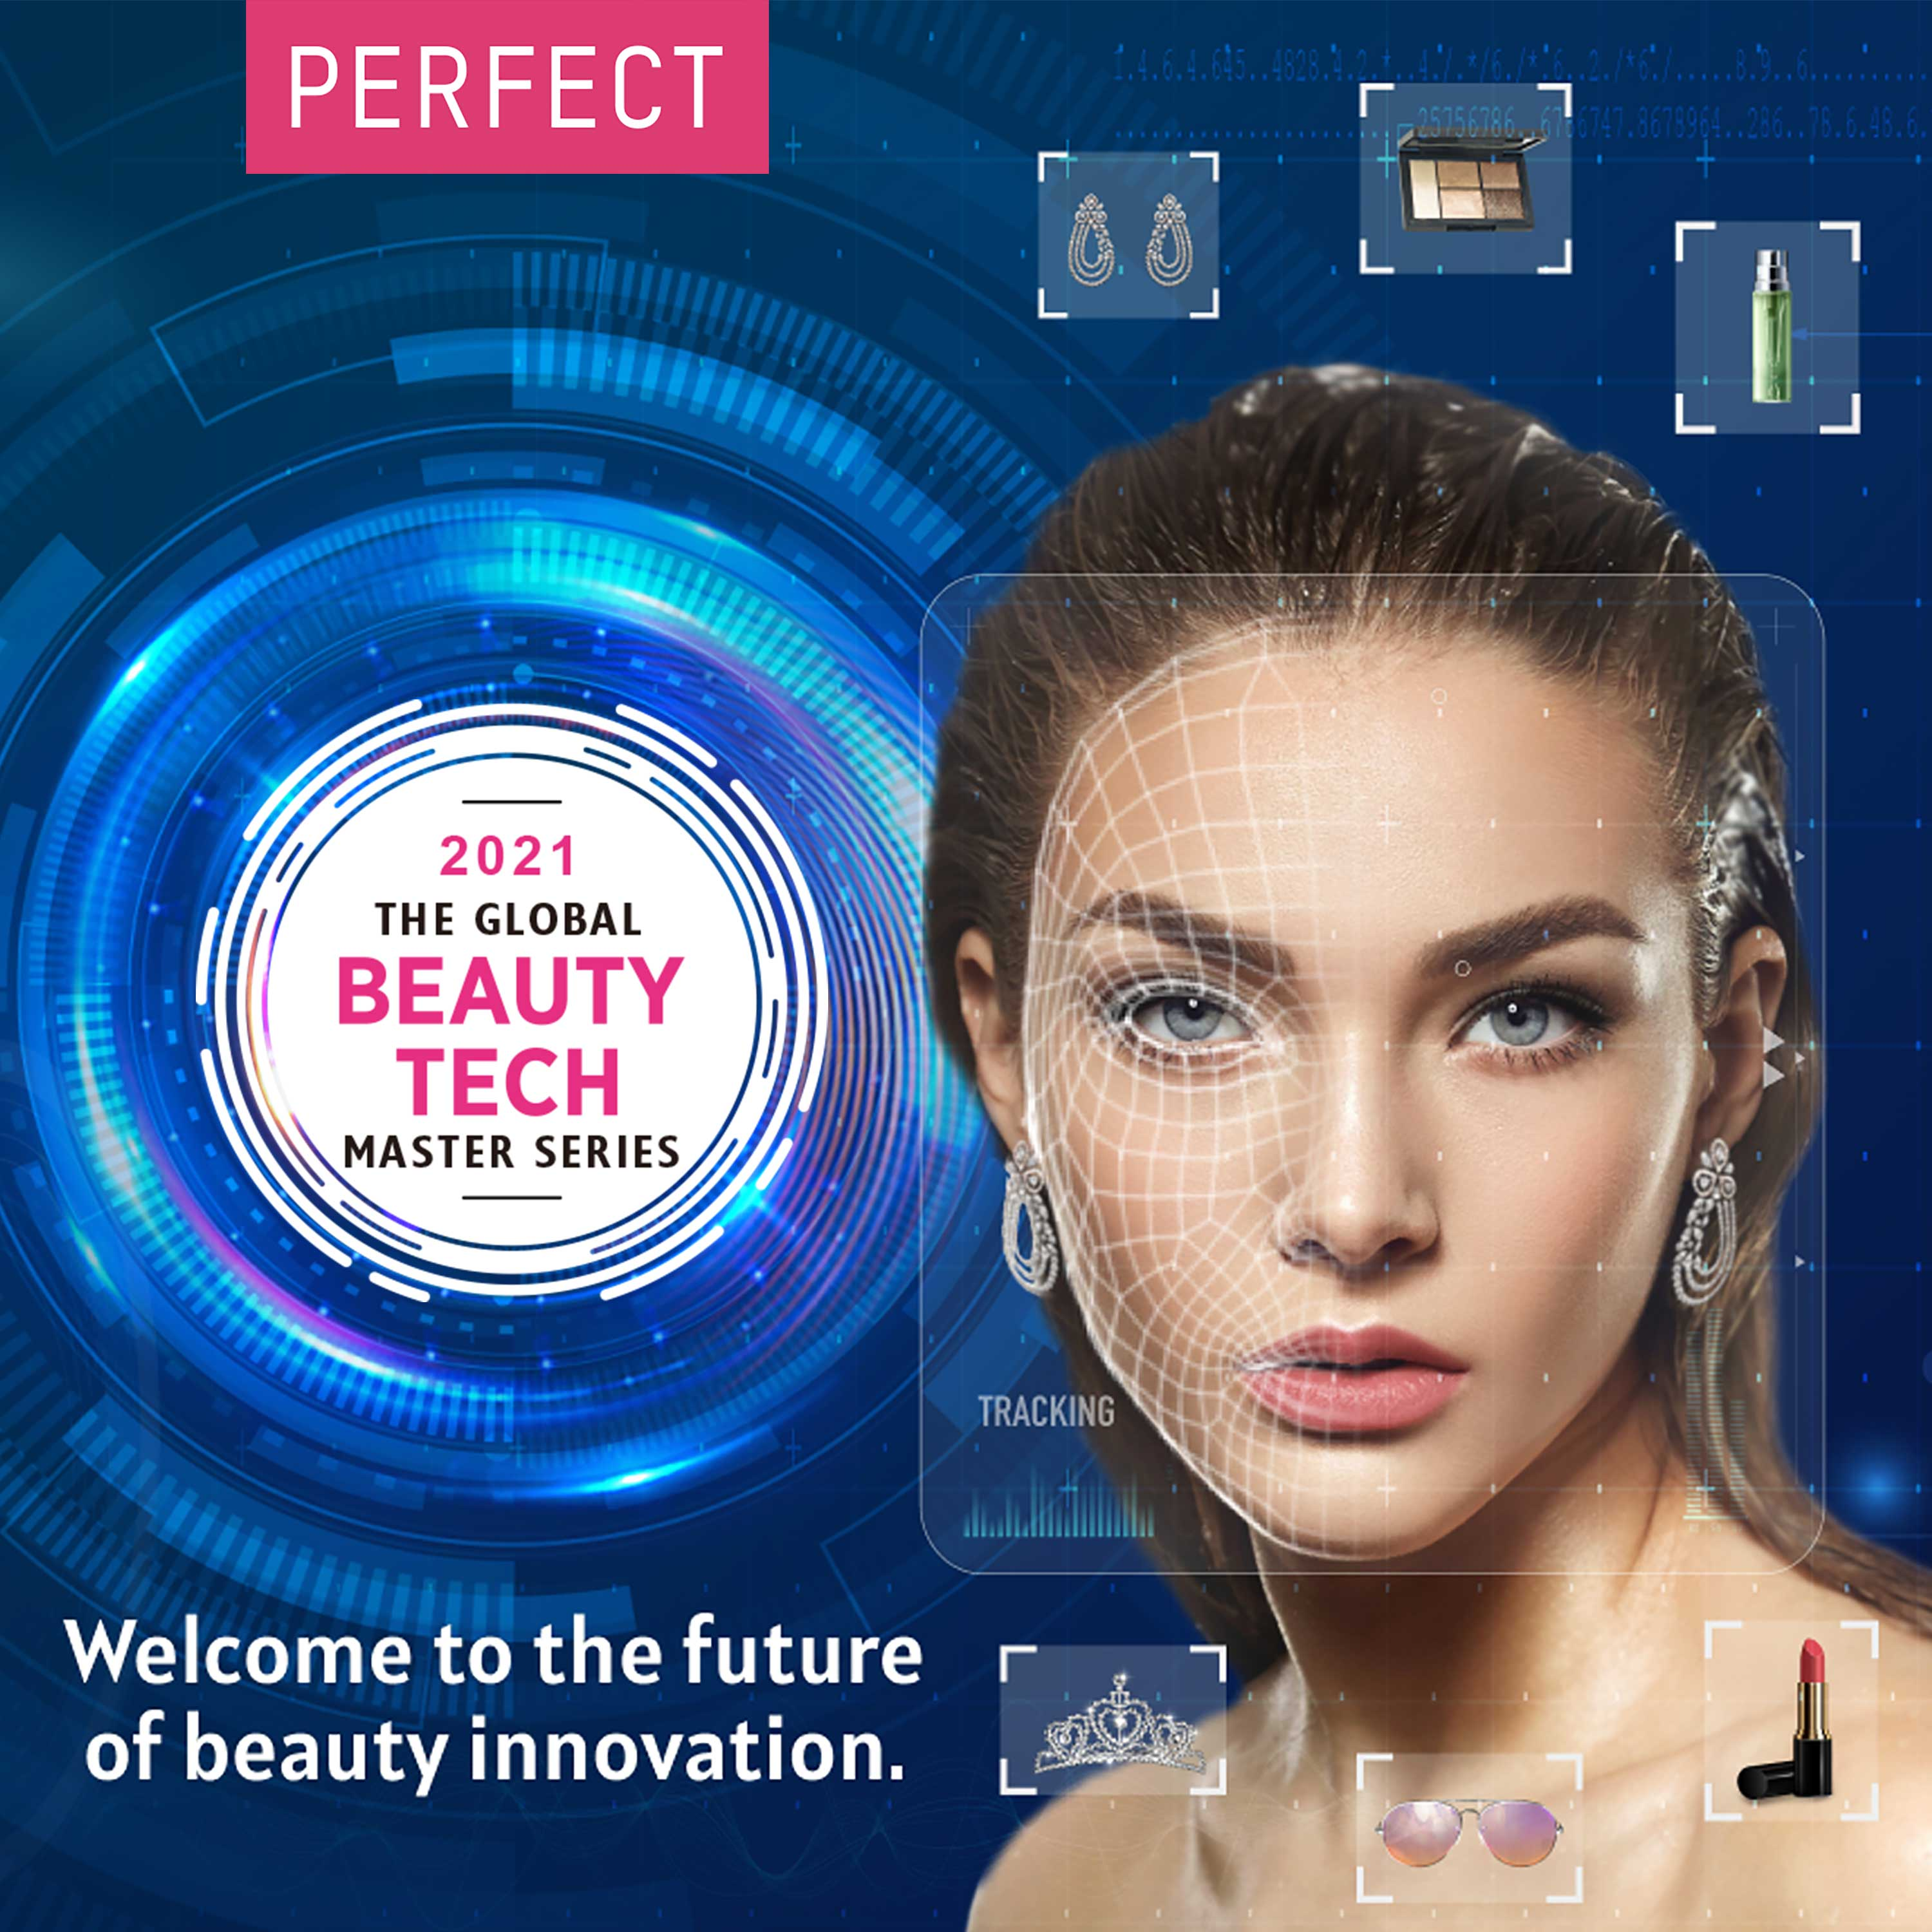 Perfect Corp.'s Global Beauty Tech Master Series